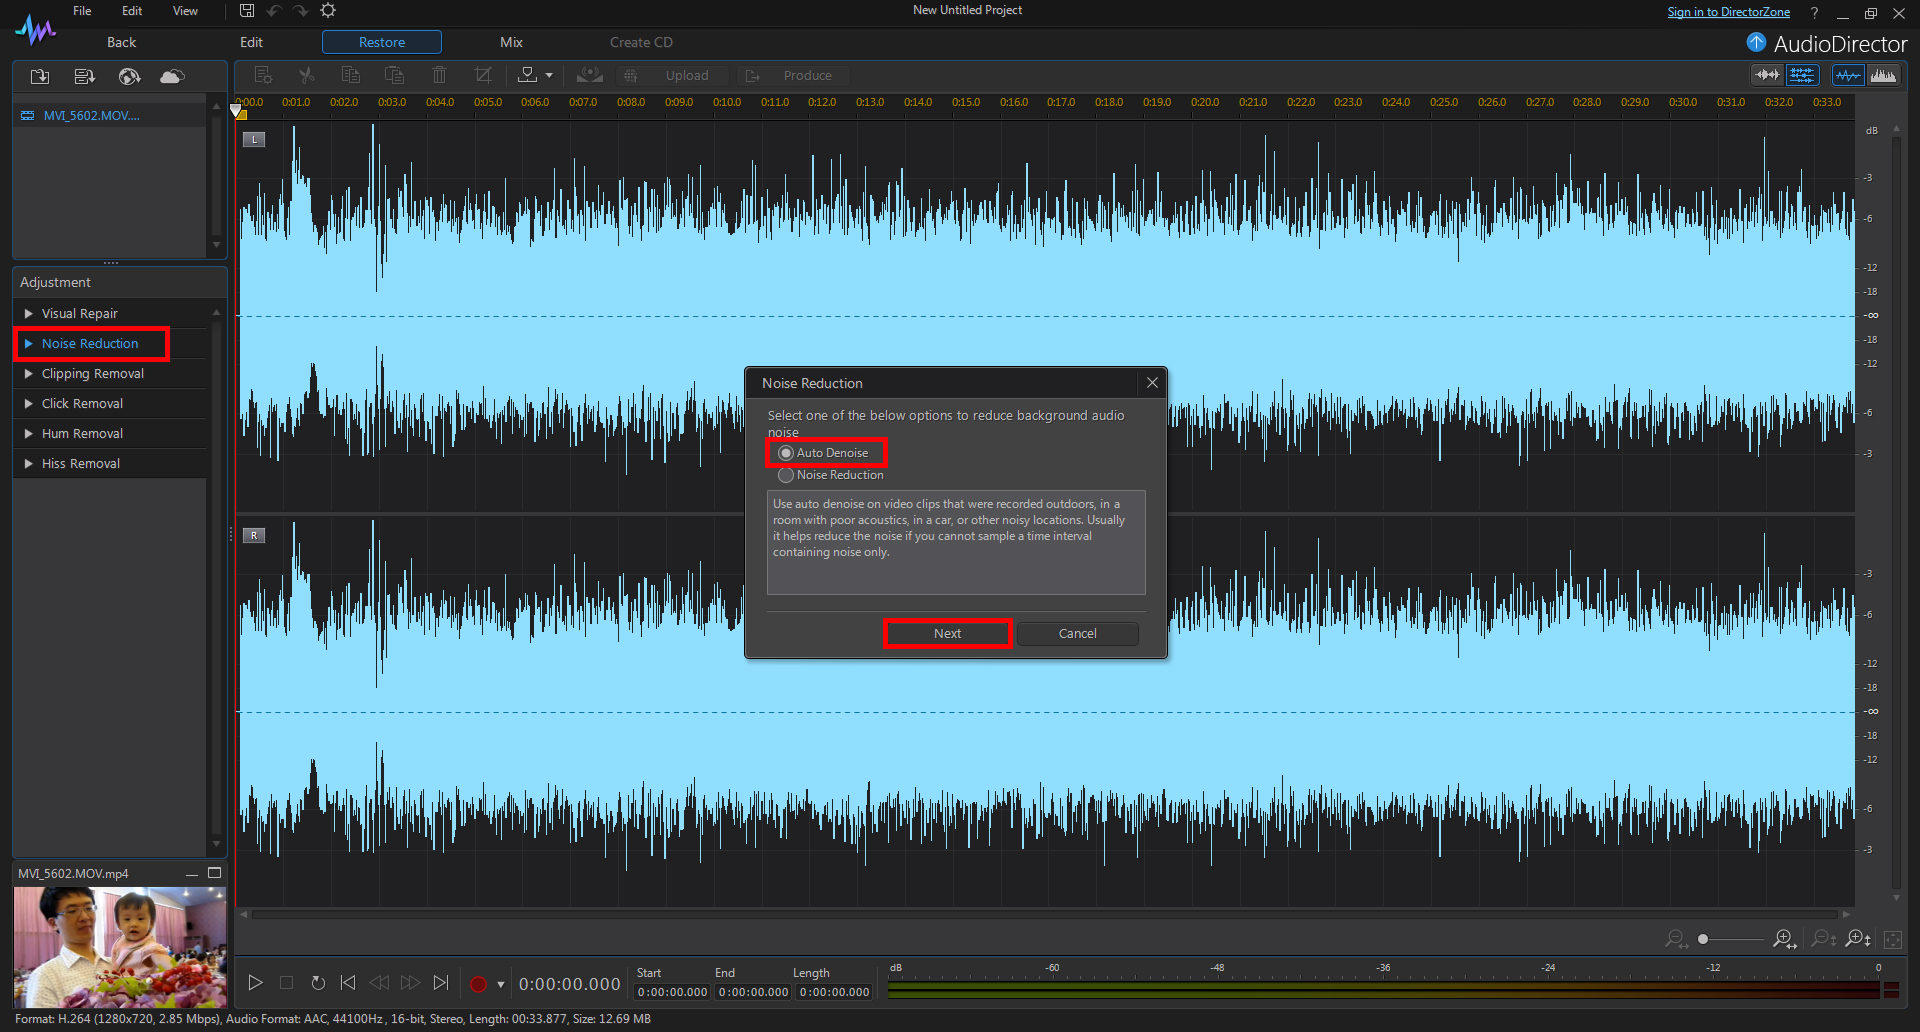 Restoring the Audio in a Wedding Video with AudioDirector | The